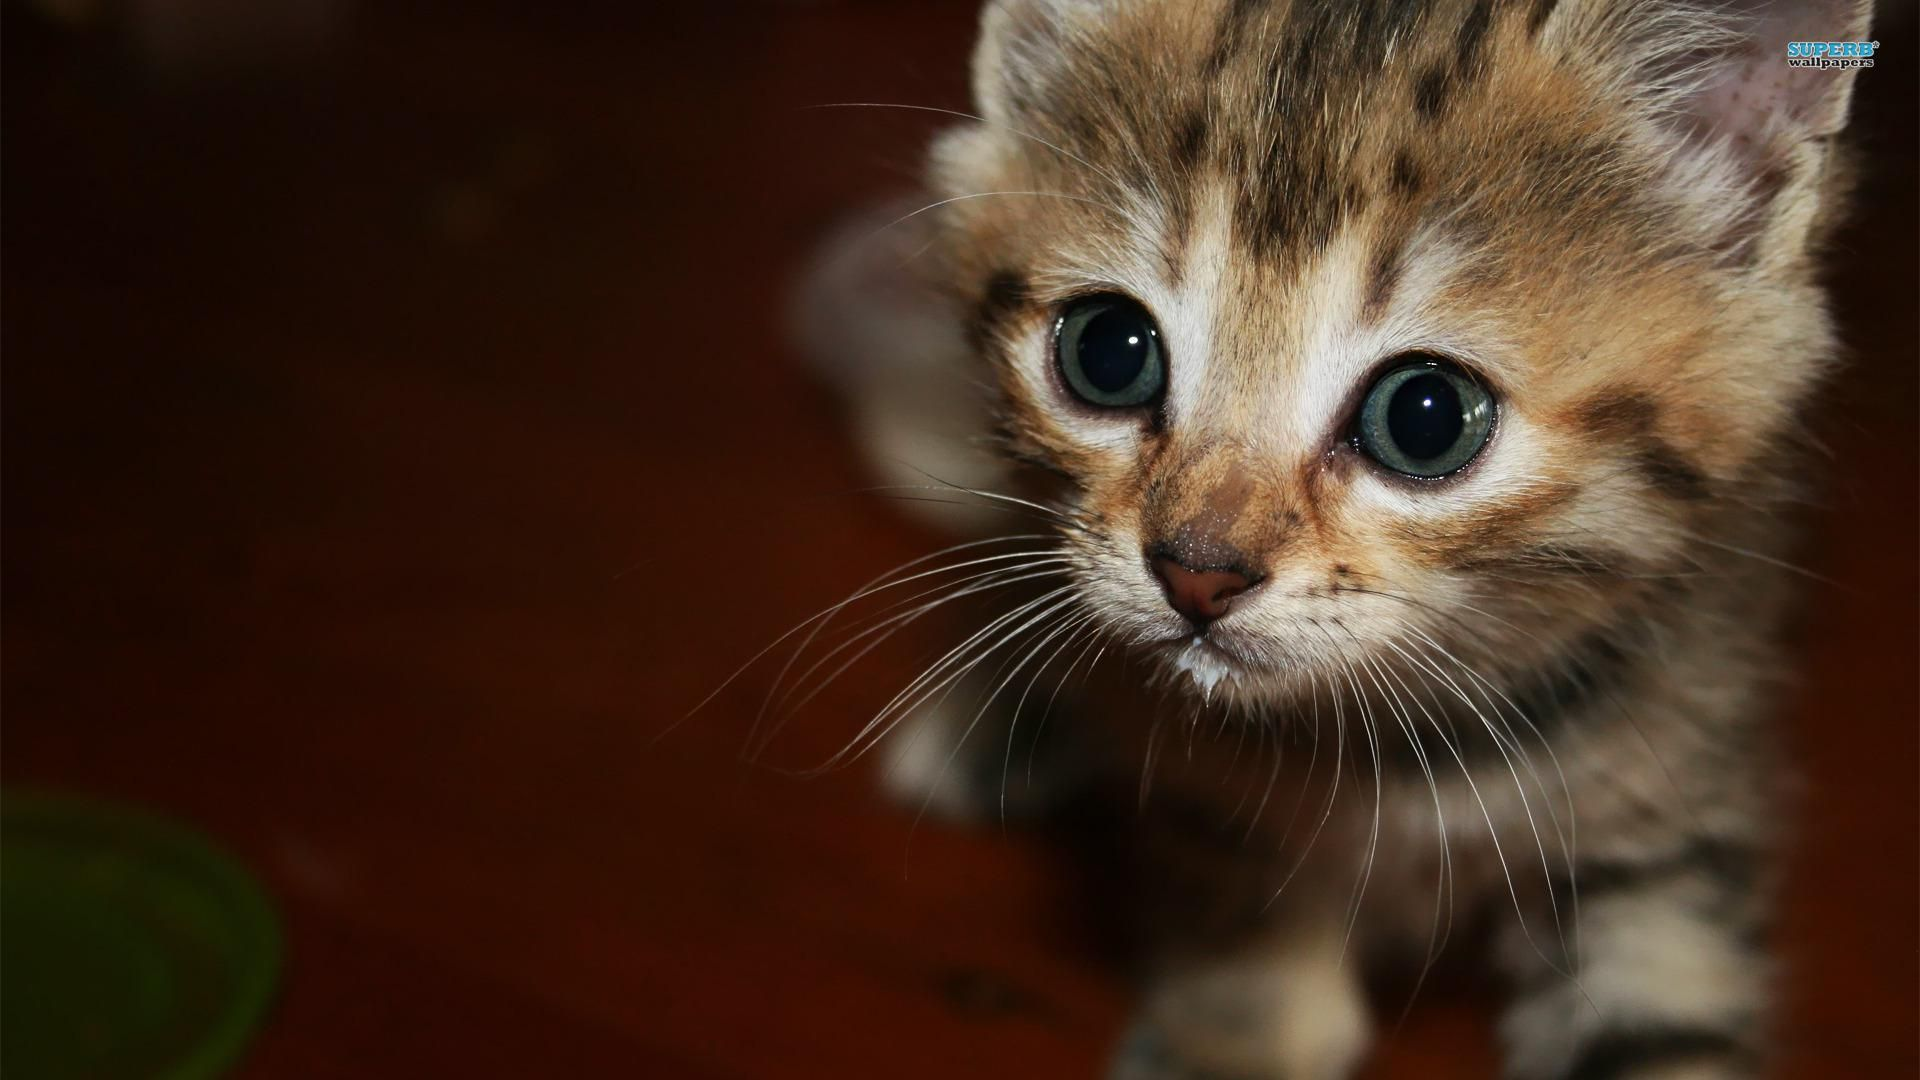 Happy kittens hd wallpapers i have a pc - Kitten wallpaper hd ...